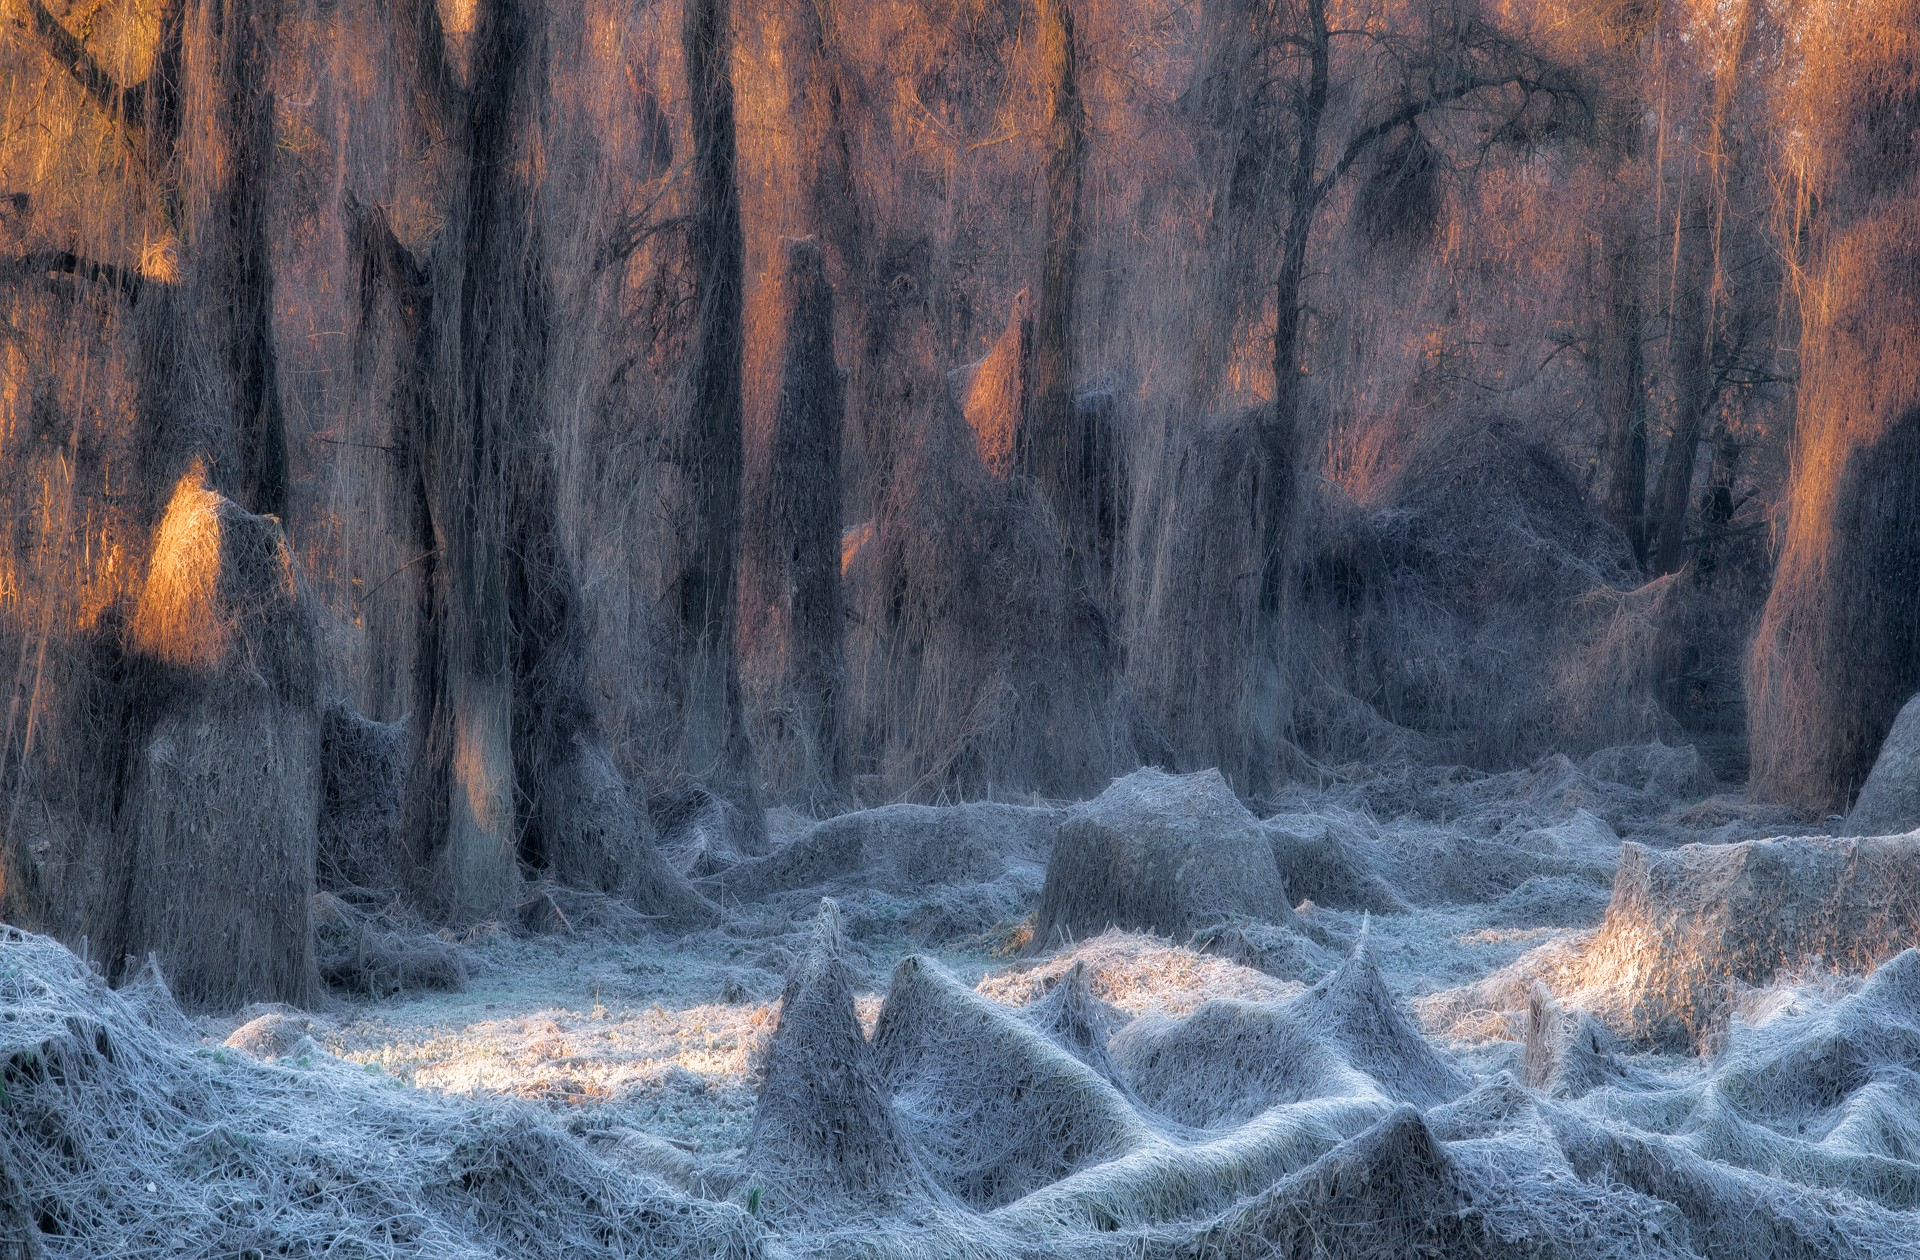 A forest looks magical due to the frost.